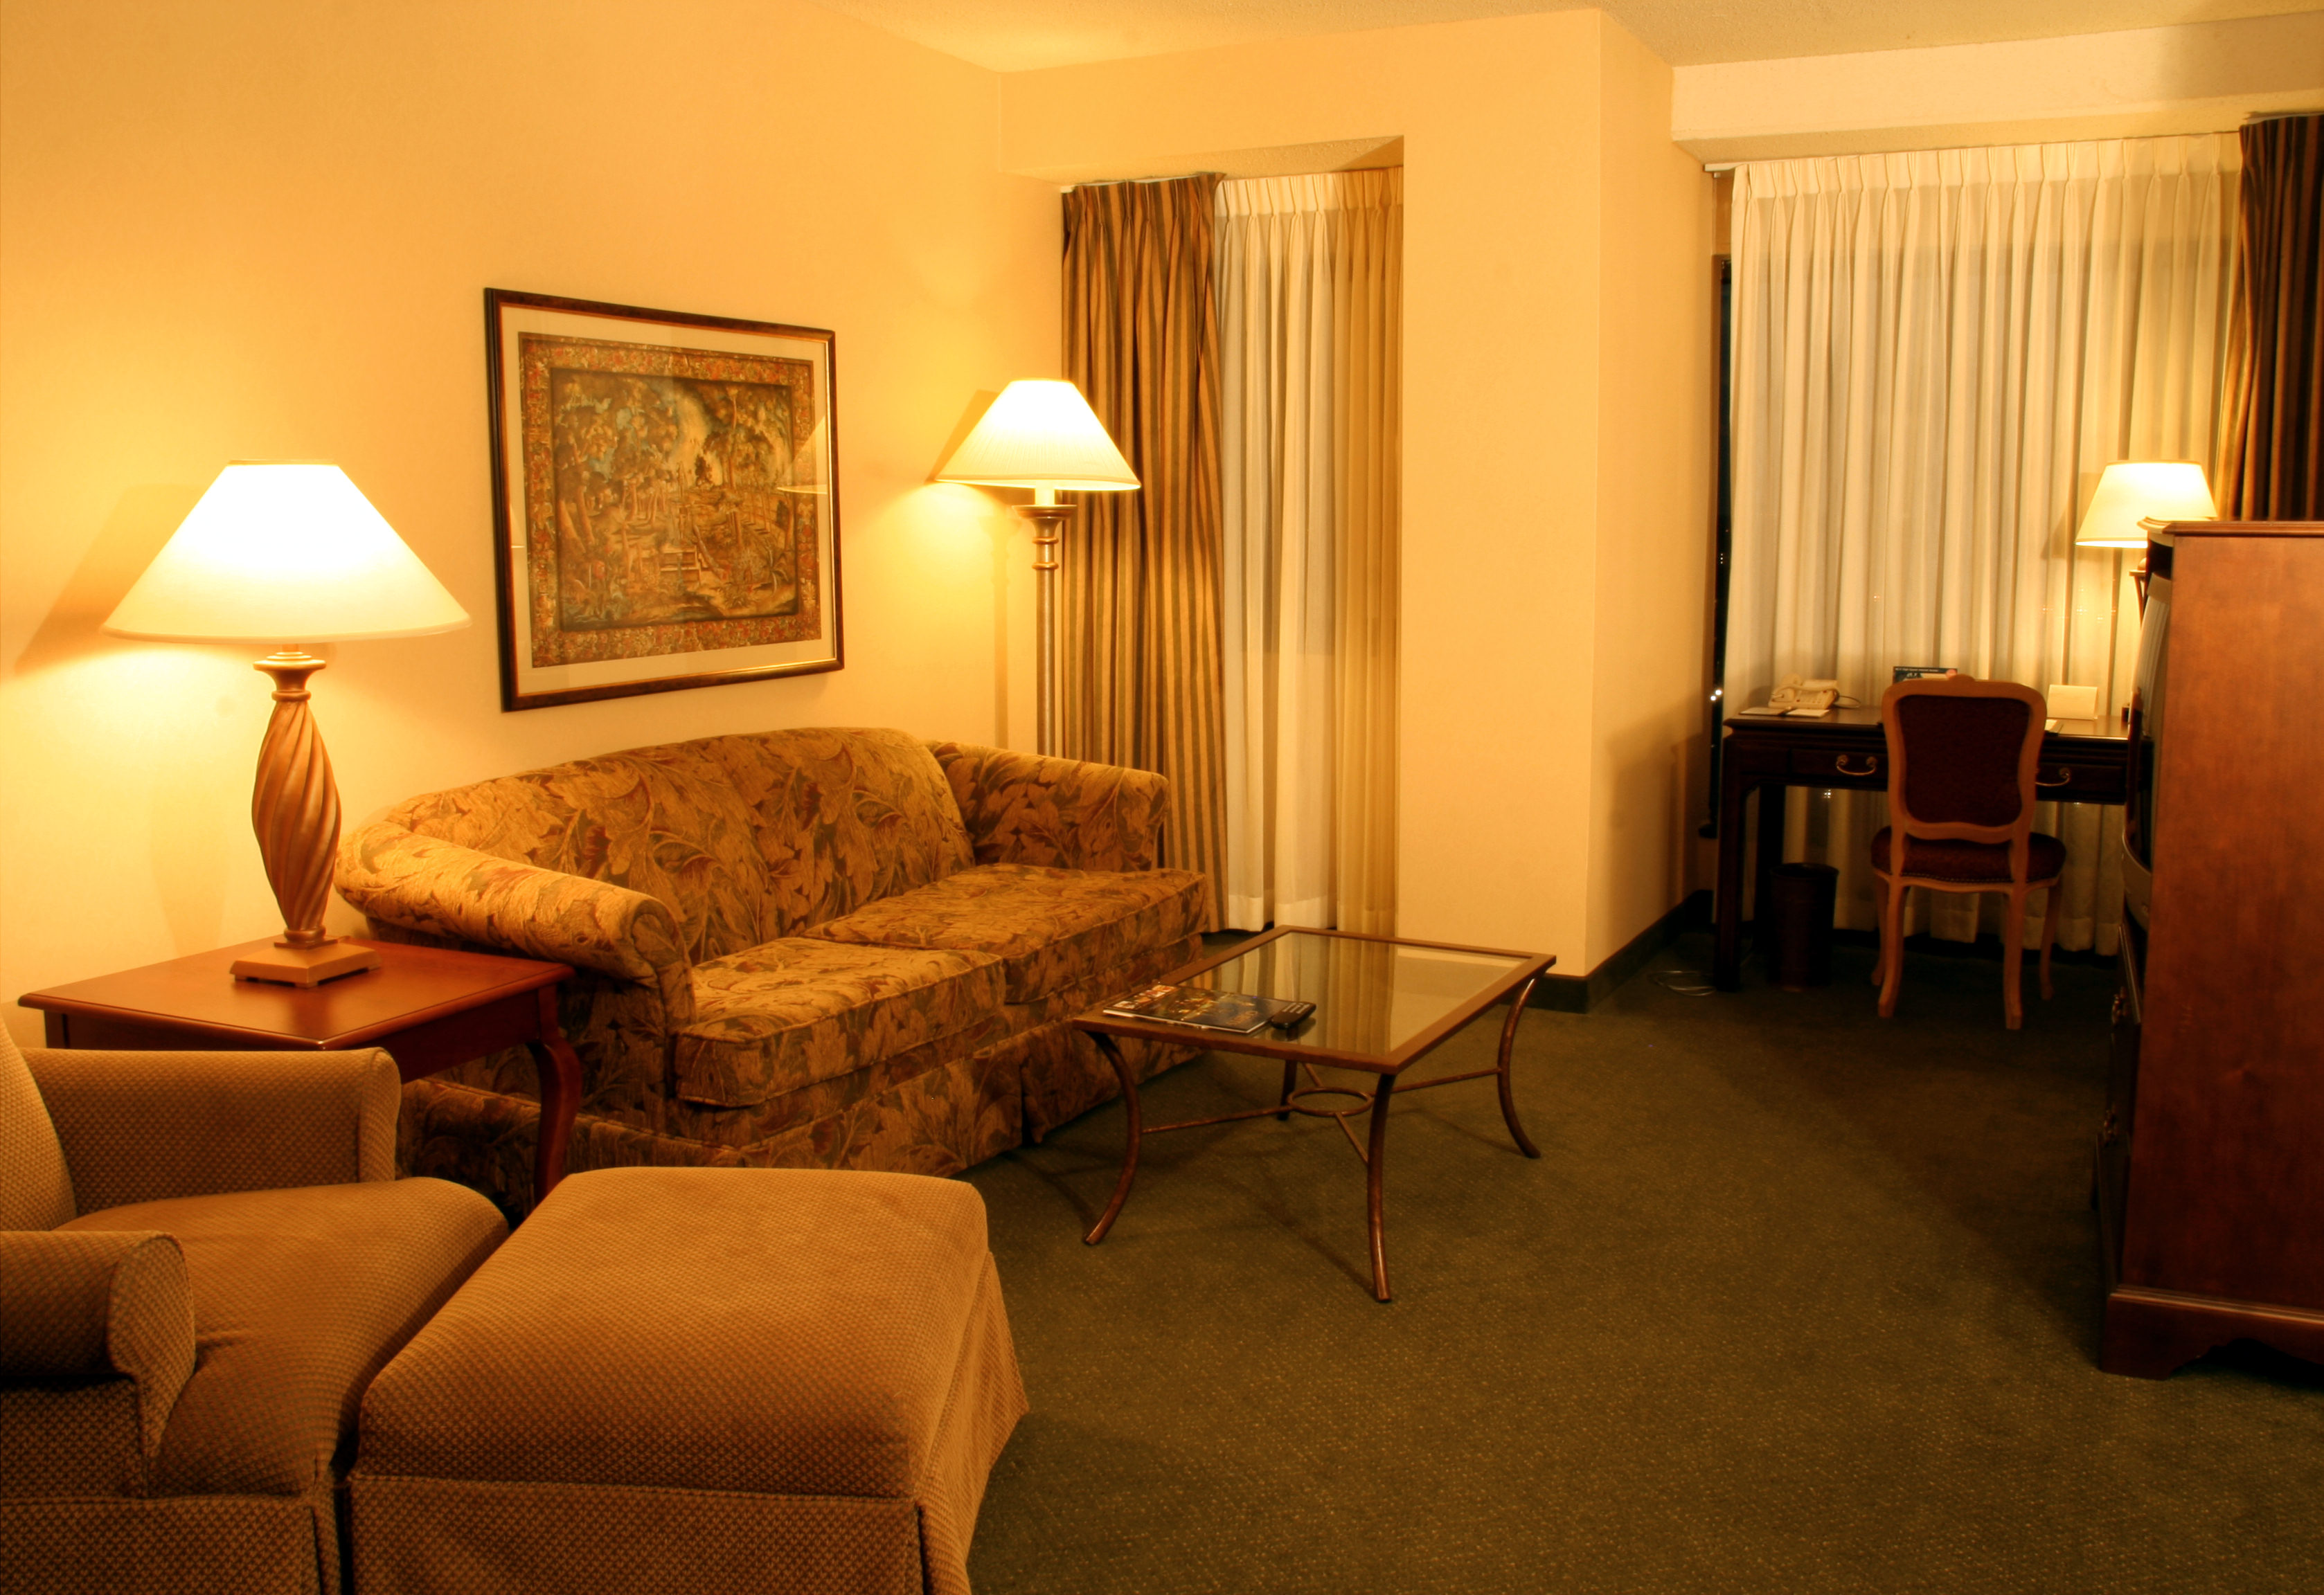 Impressive Hotel Suite Living Room 3356 x 2304 · 1029 kB · jpeg